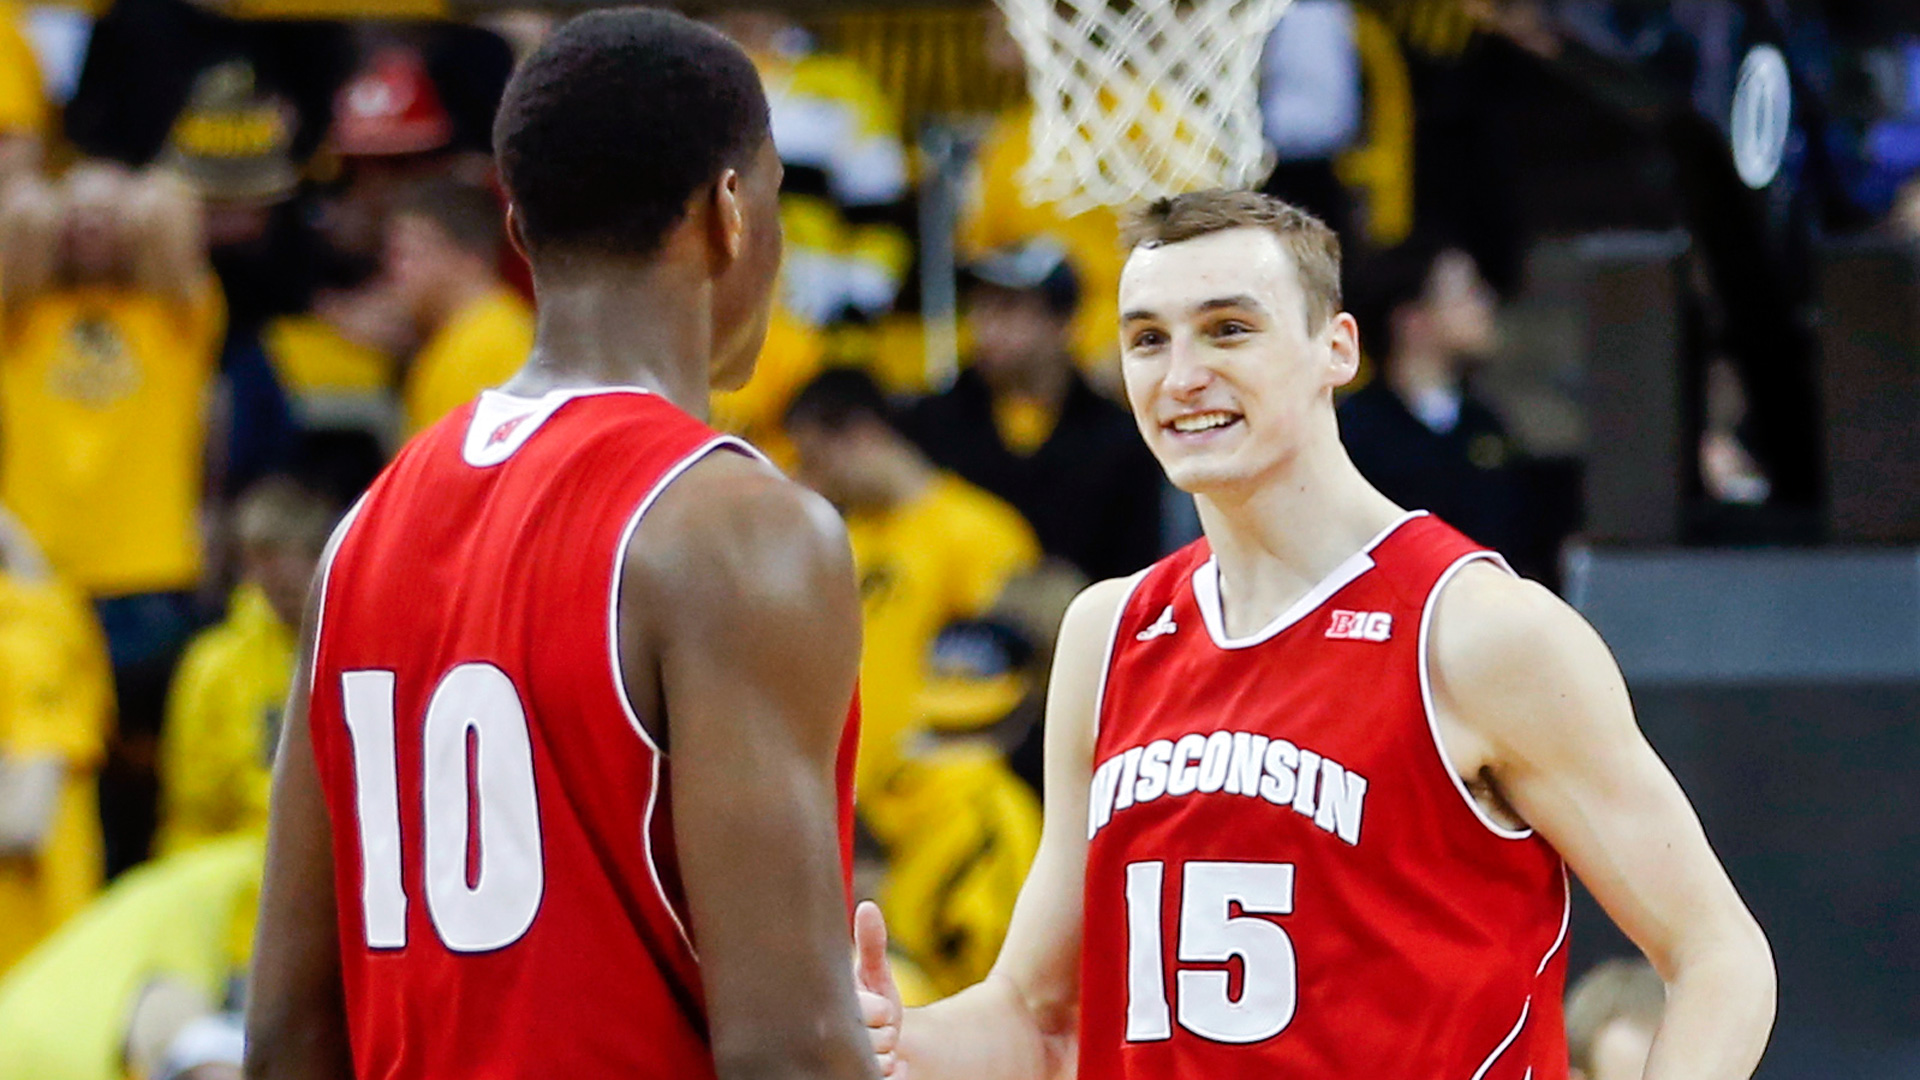 Wisconsin-Sam Dekker and Nigel Hayes-022214-AP-FTR.jpg